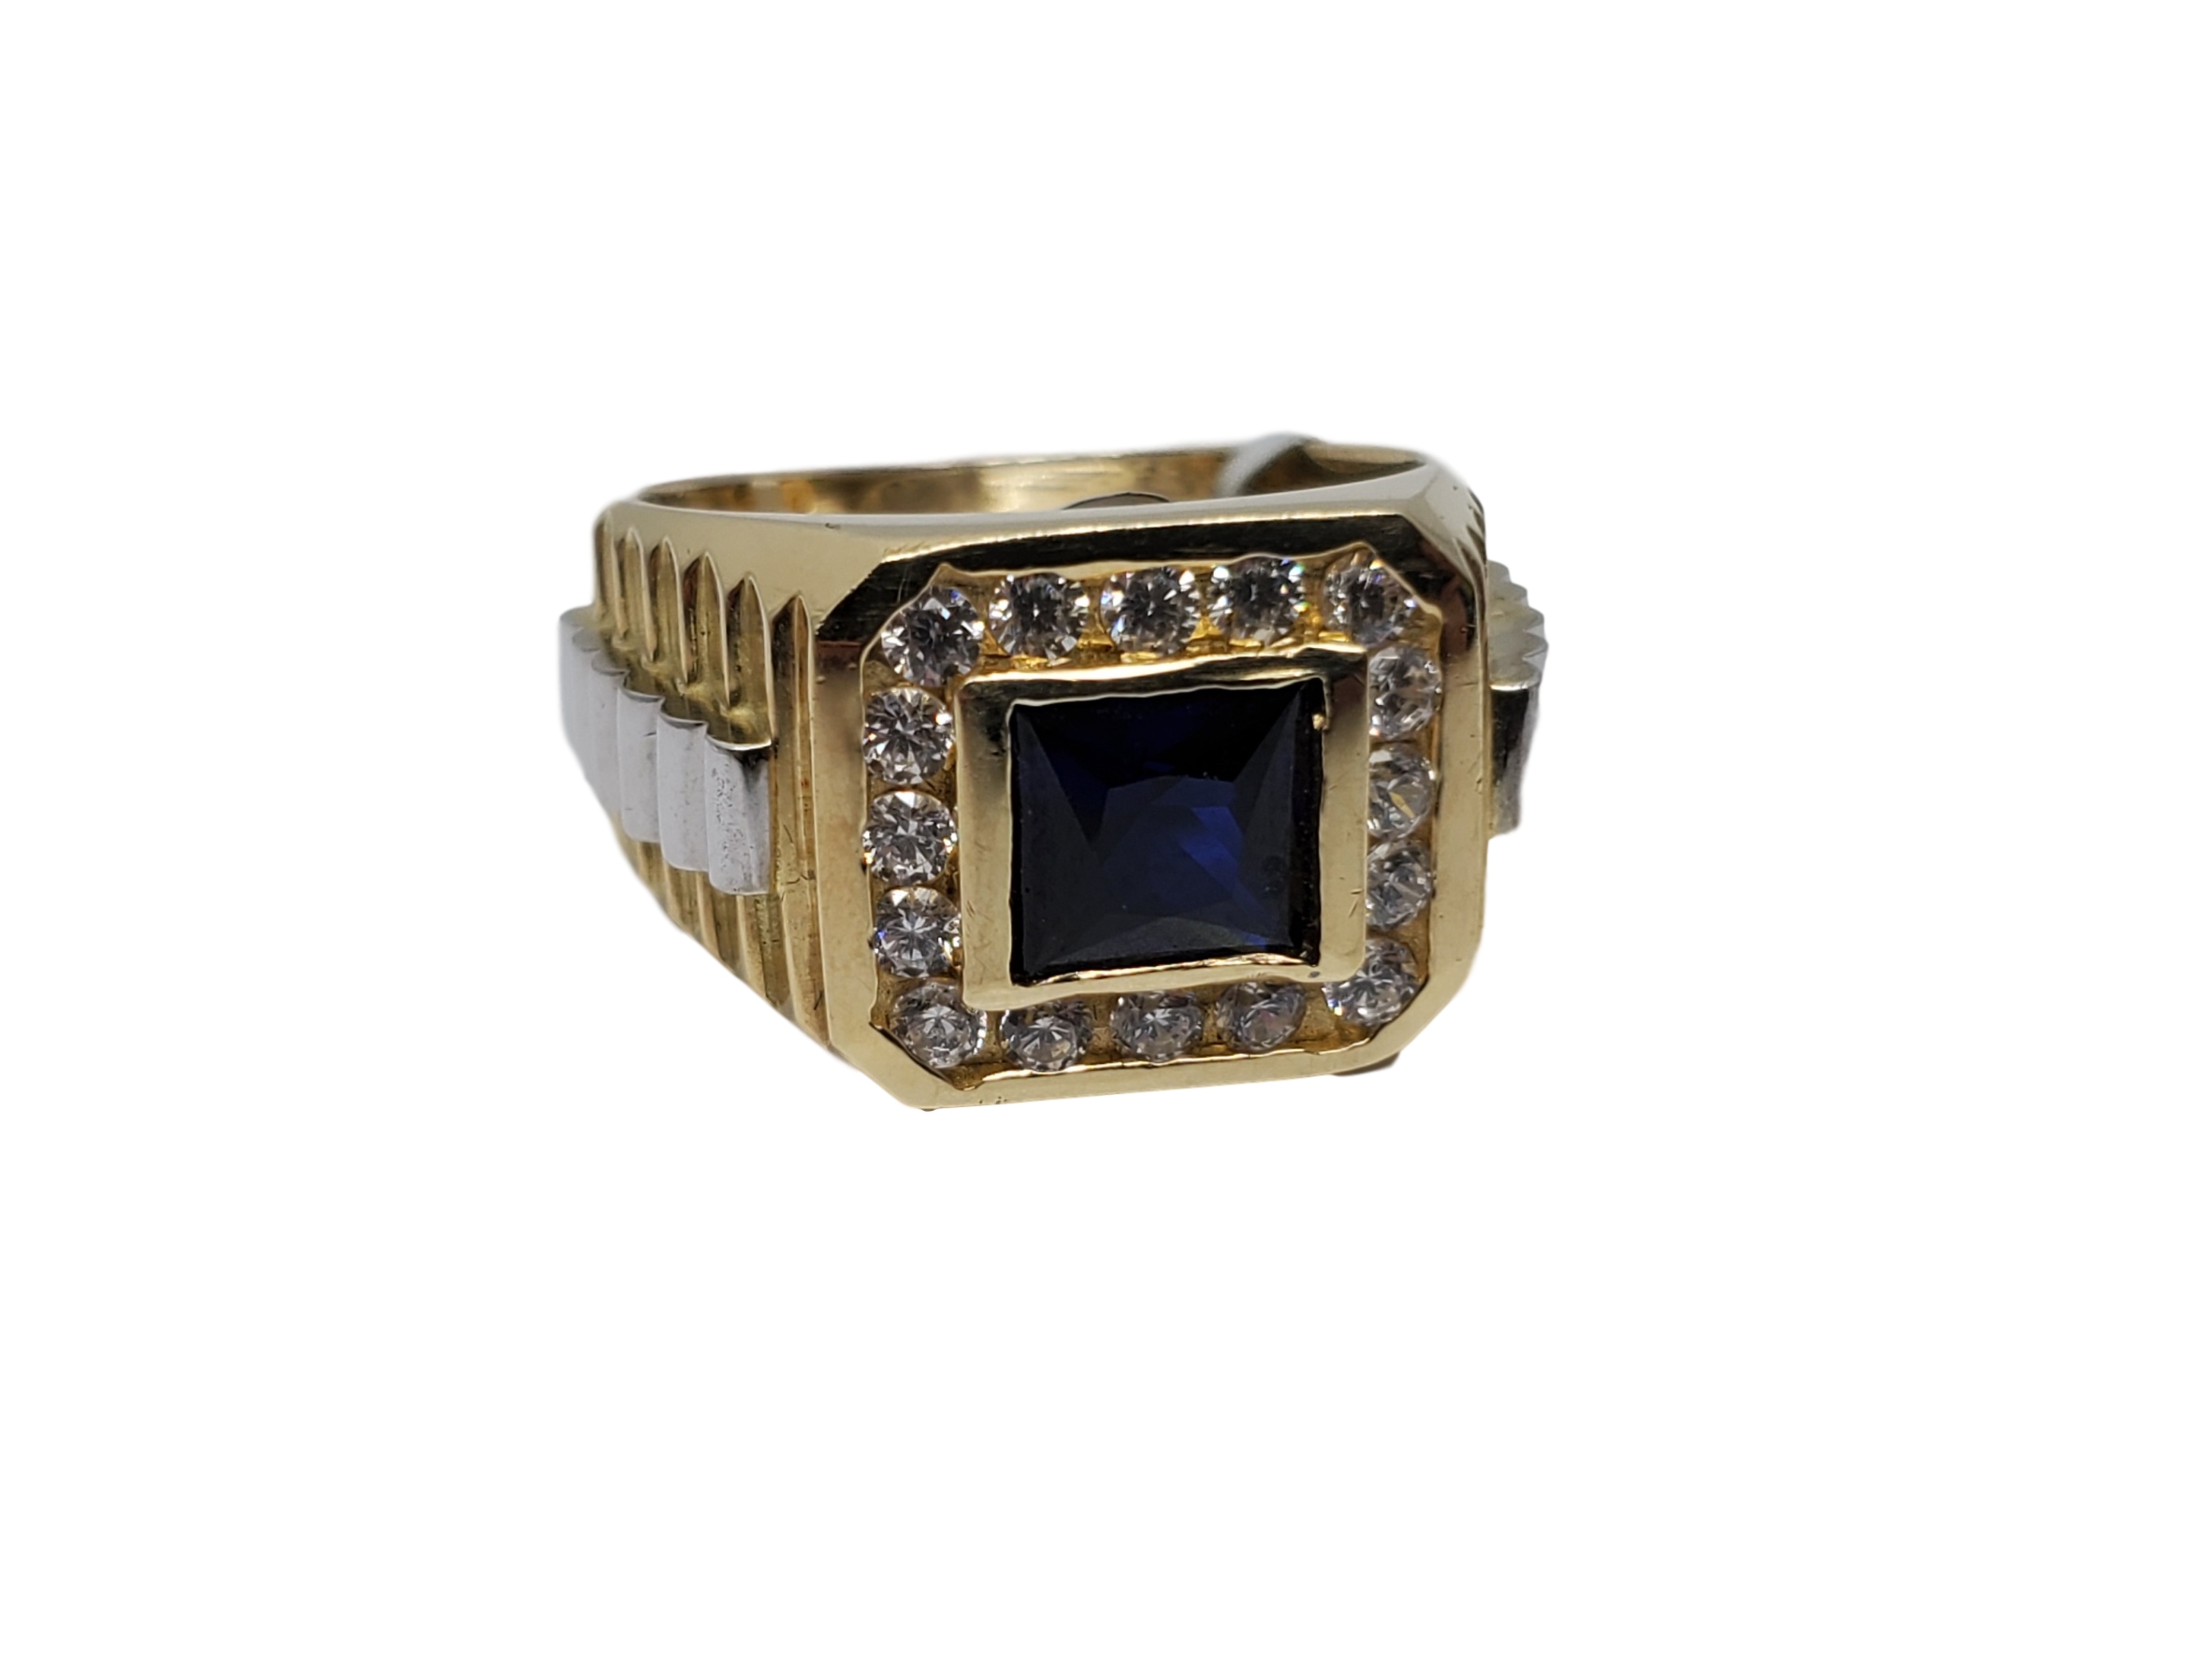 Bague ruby noir en or 10k model 2020